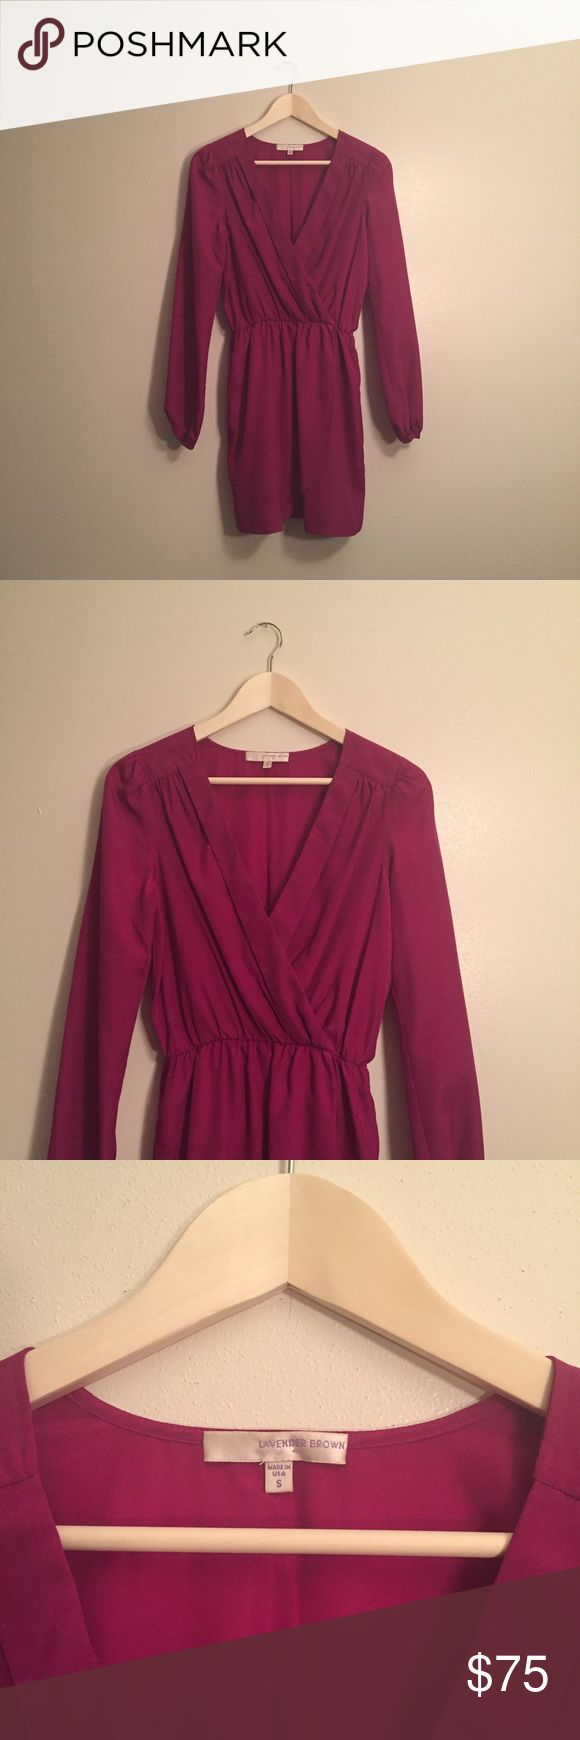 Lavender Brown fuchsia V-neck wrap dress Absolutely stunning Lavender Brown fuchsia V-neck wrap dress. In perfect condition! This beautiful dress is perfect for just about any occasion with a simple necklace and heels. Lavender Brown Dresses Long Sleeve